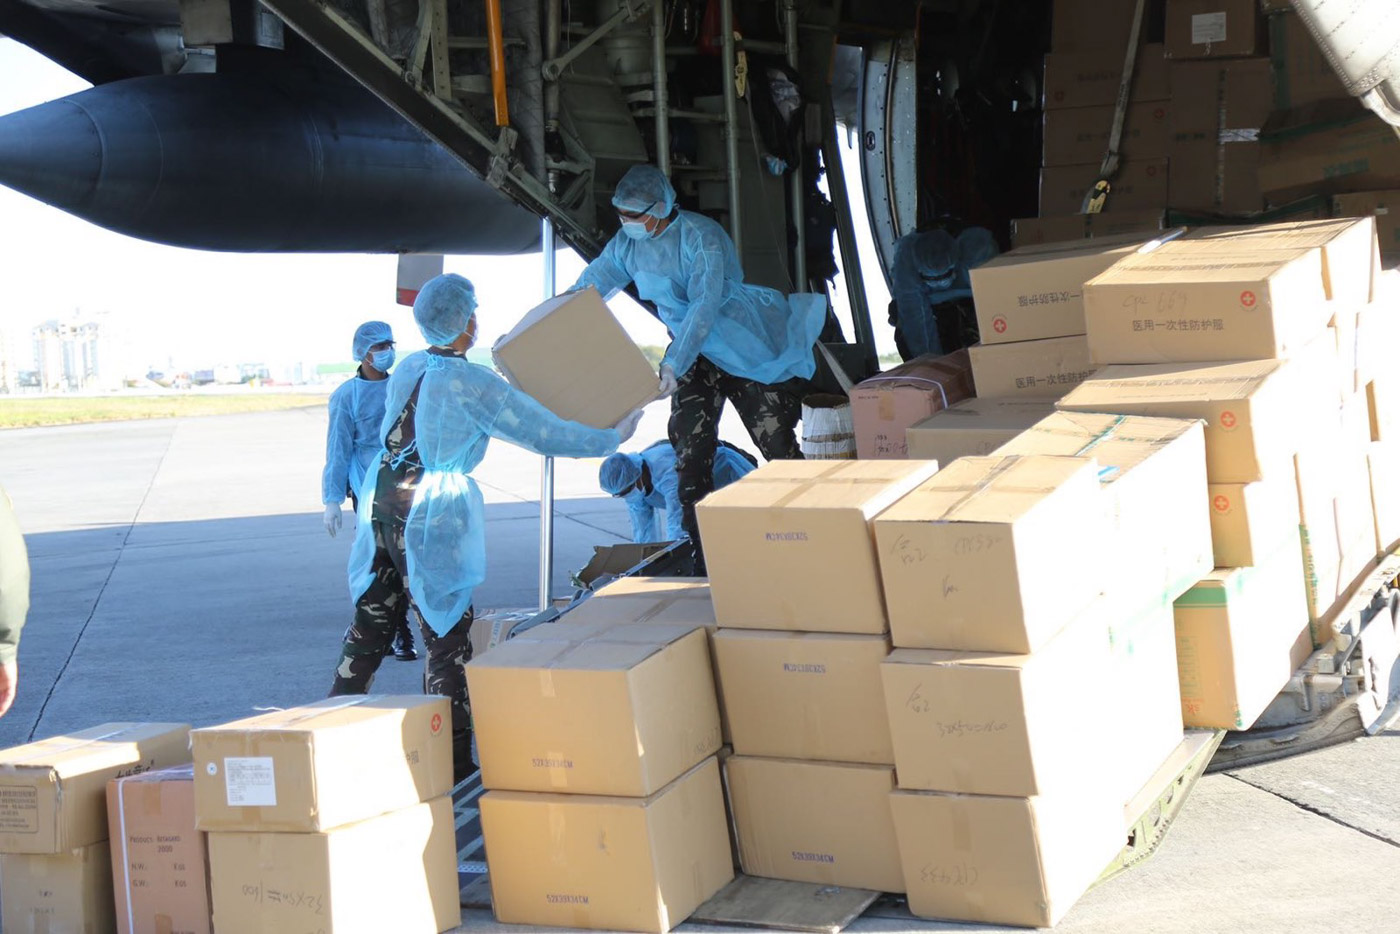 EQUIPMENT, SUPPLIES. Soldiers unload donated cargo from the Philippine Air Force's C-130 plane at Villamor Airbase on March 21, 2020. Photo from the Armed Forces of the Philippines